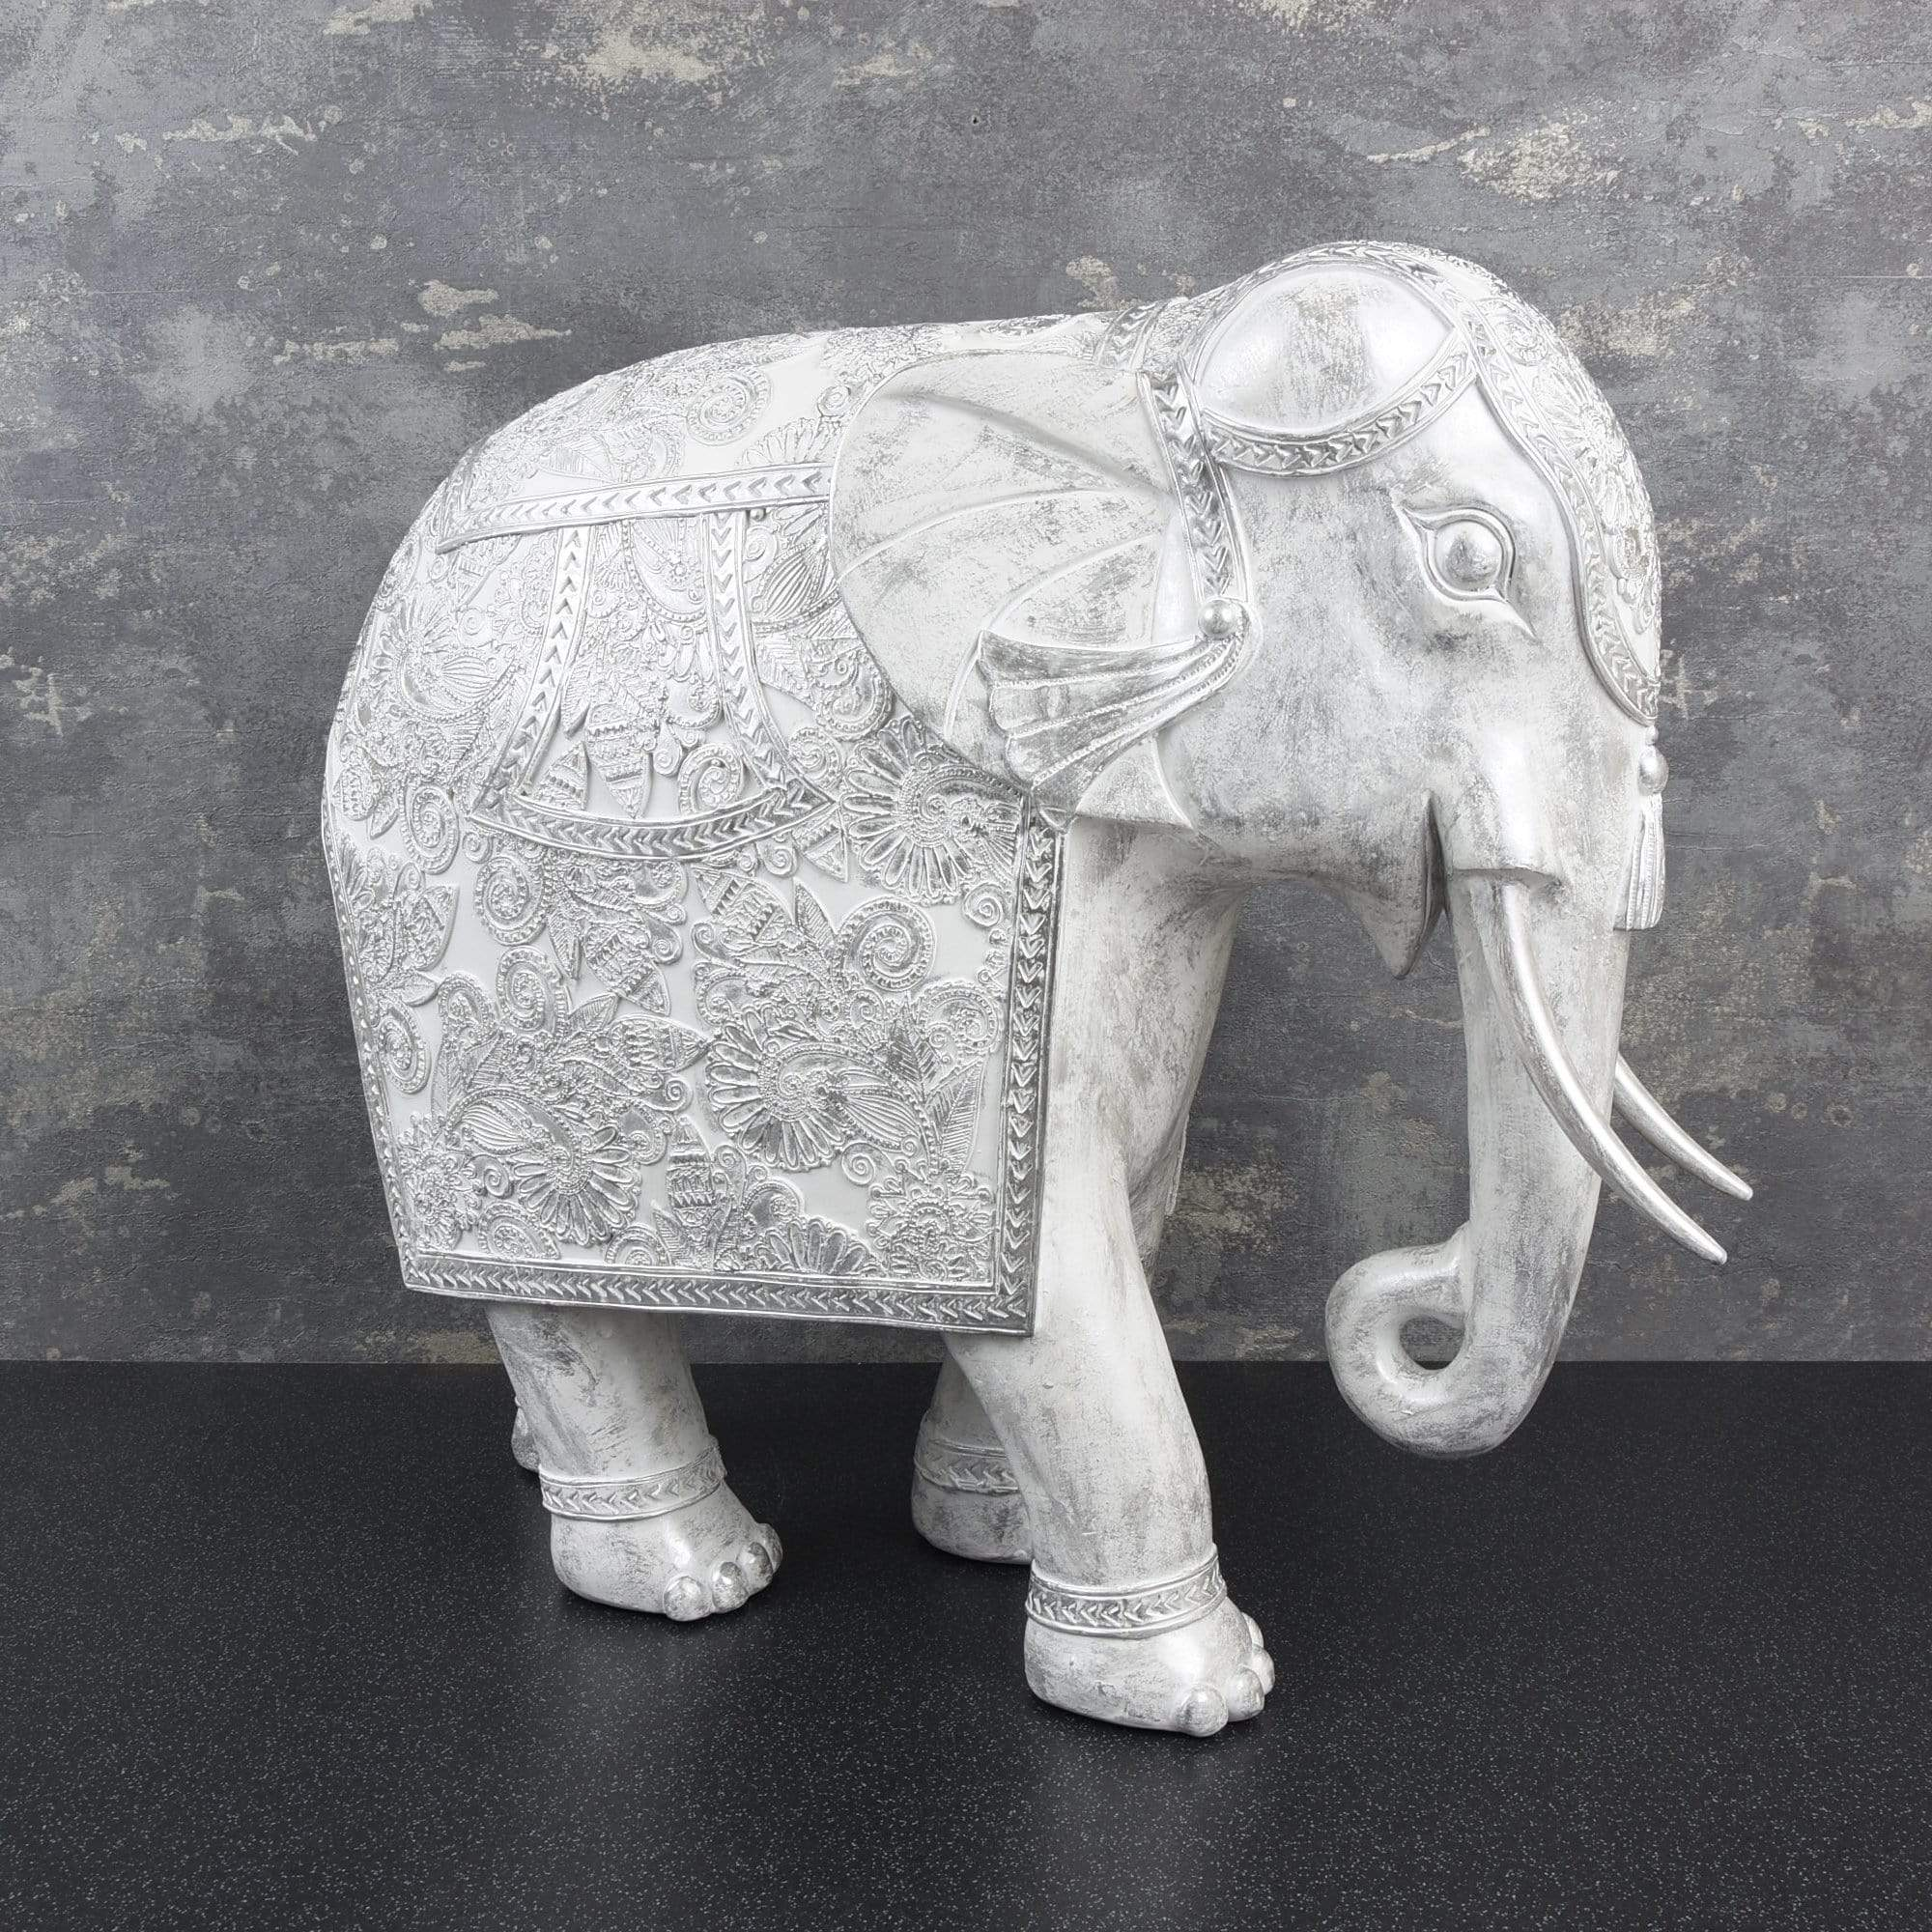 Candlelight Home Animals & Insects Large Elephant Ornament White Wash 38.5cm 1PK